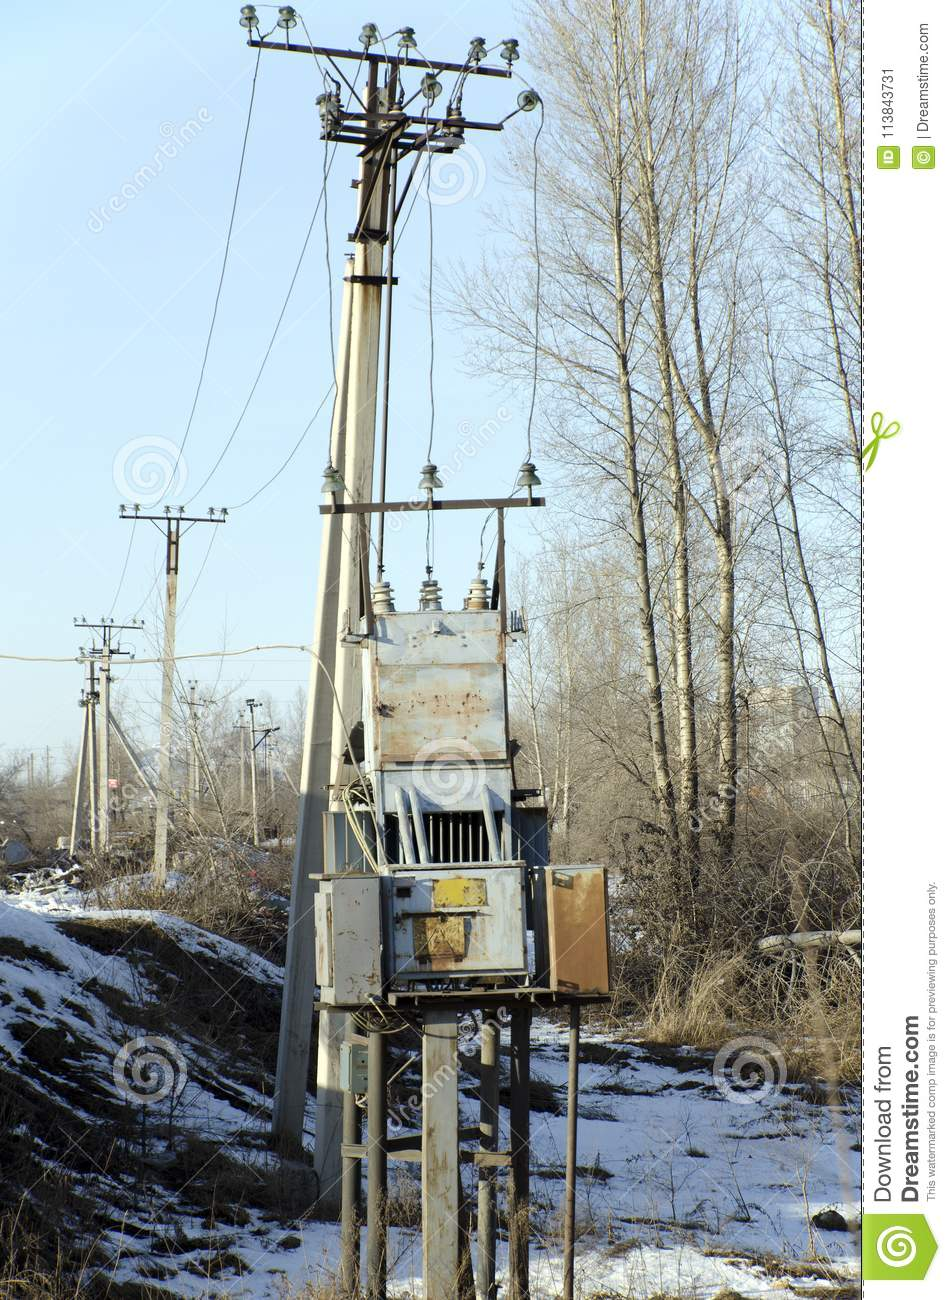 hight resolution of old high voltage transformer installed right on the street electrical industry